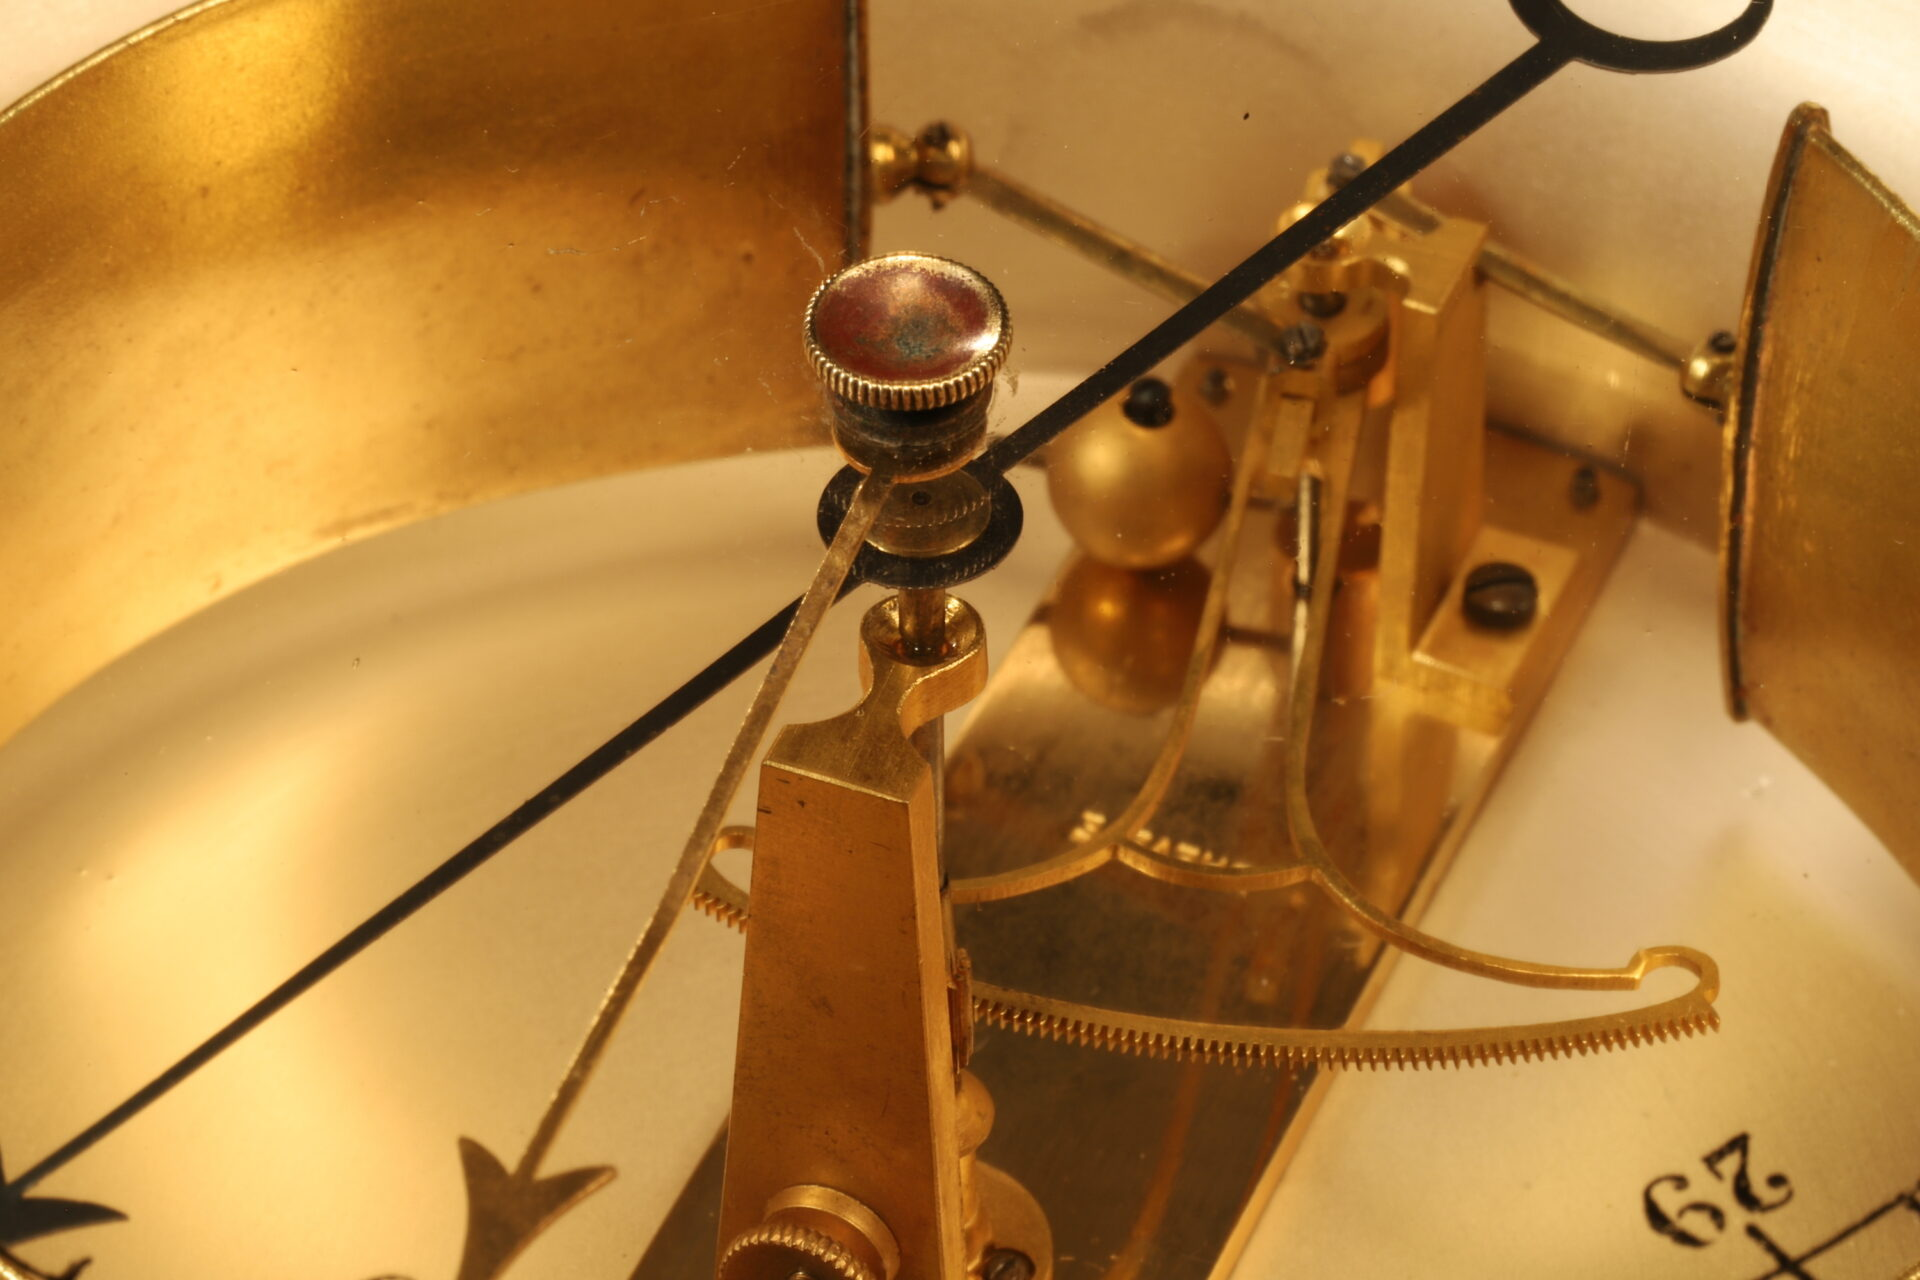 Close up of movement from Bourdon Barometer No 15178 c1880 showing fan